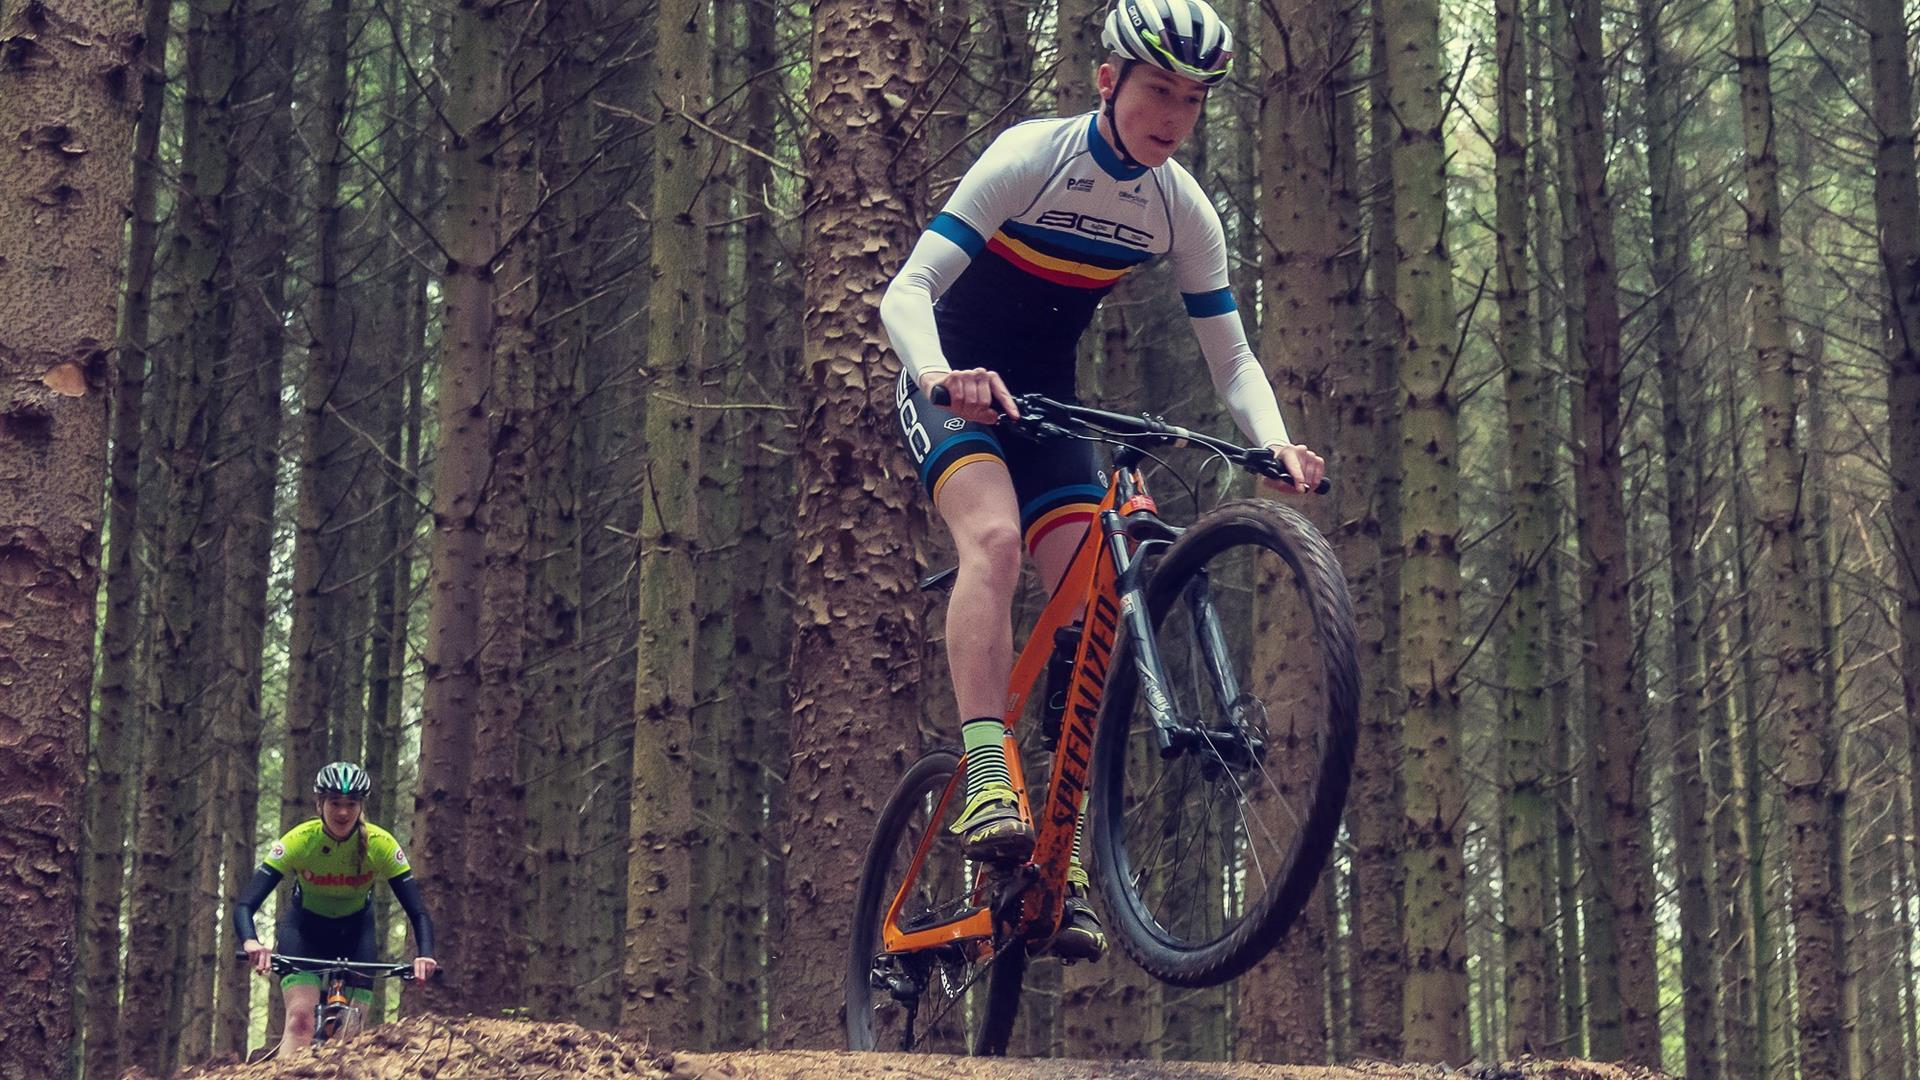 Garvagh Forest Cycling Trails